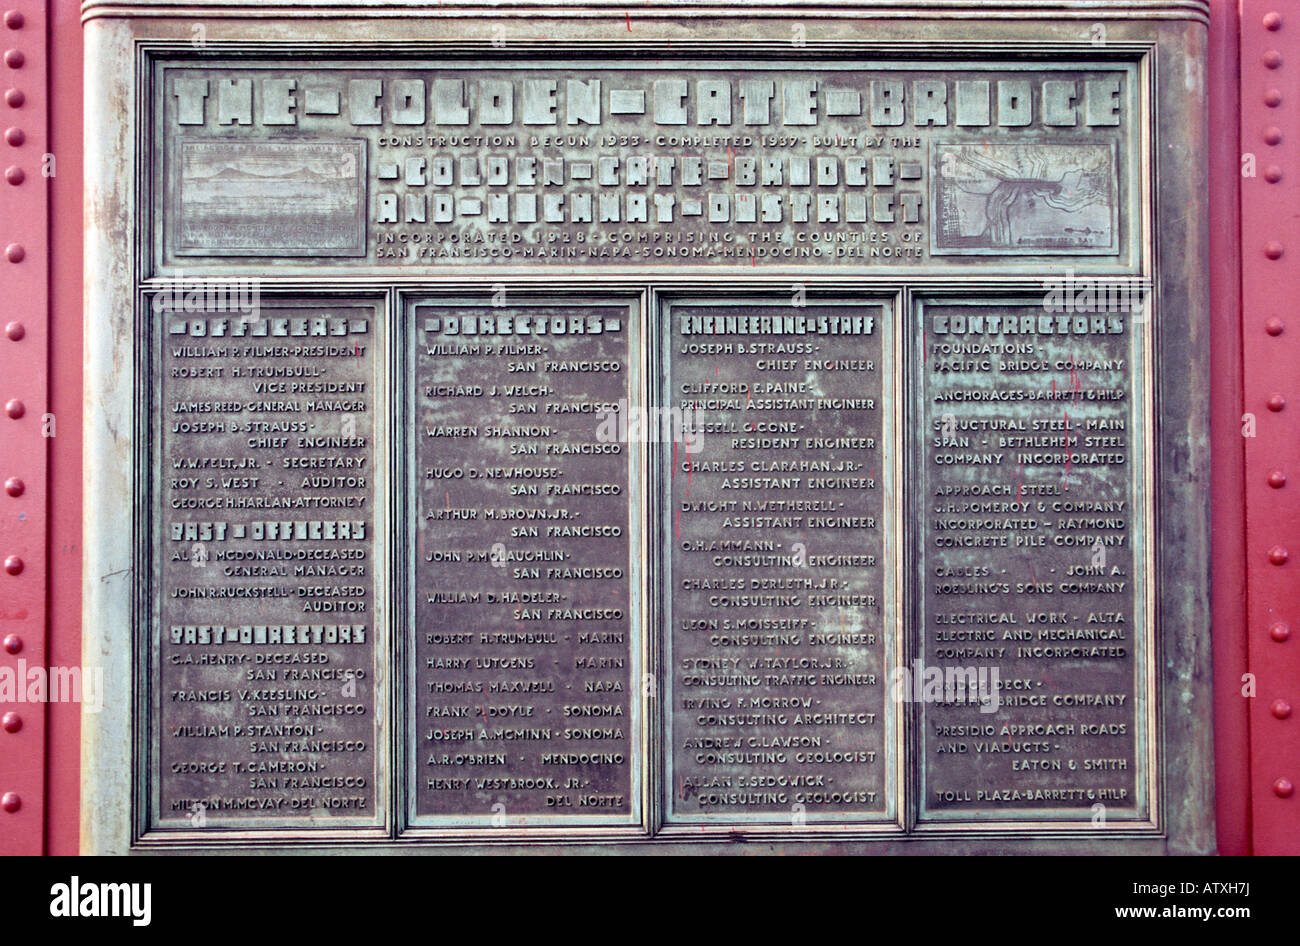 Plaque comemorating the construction of the Golden Gate